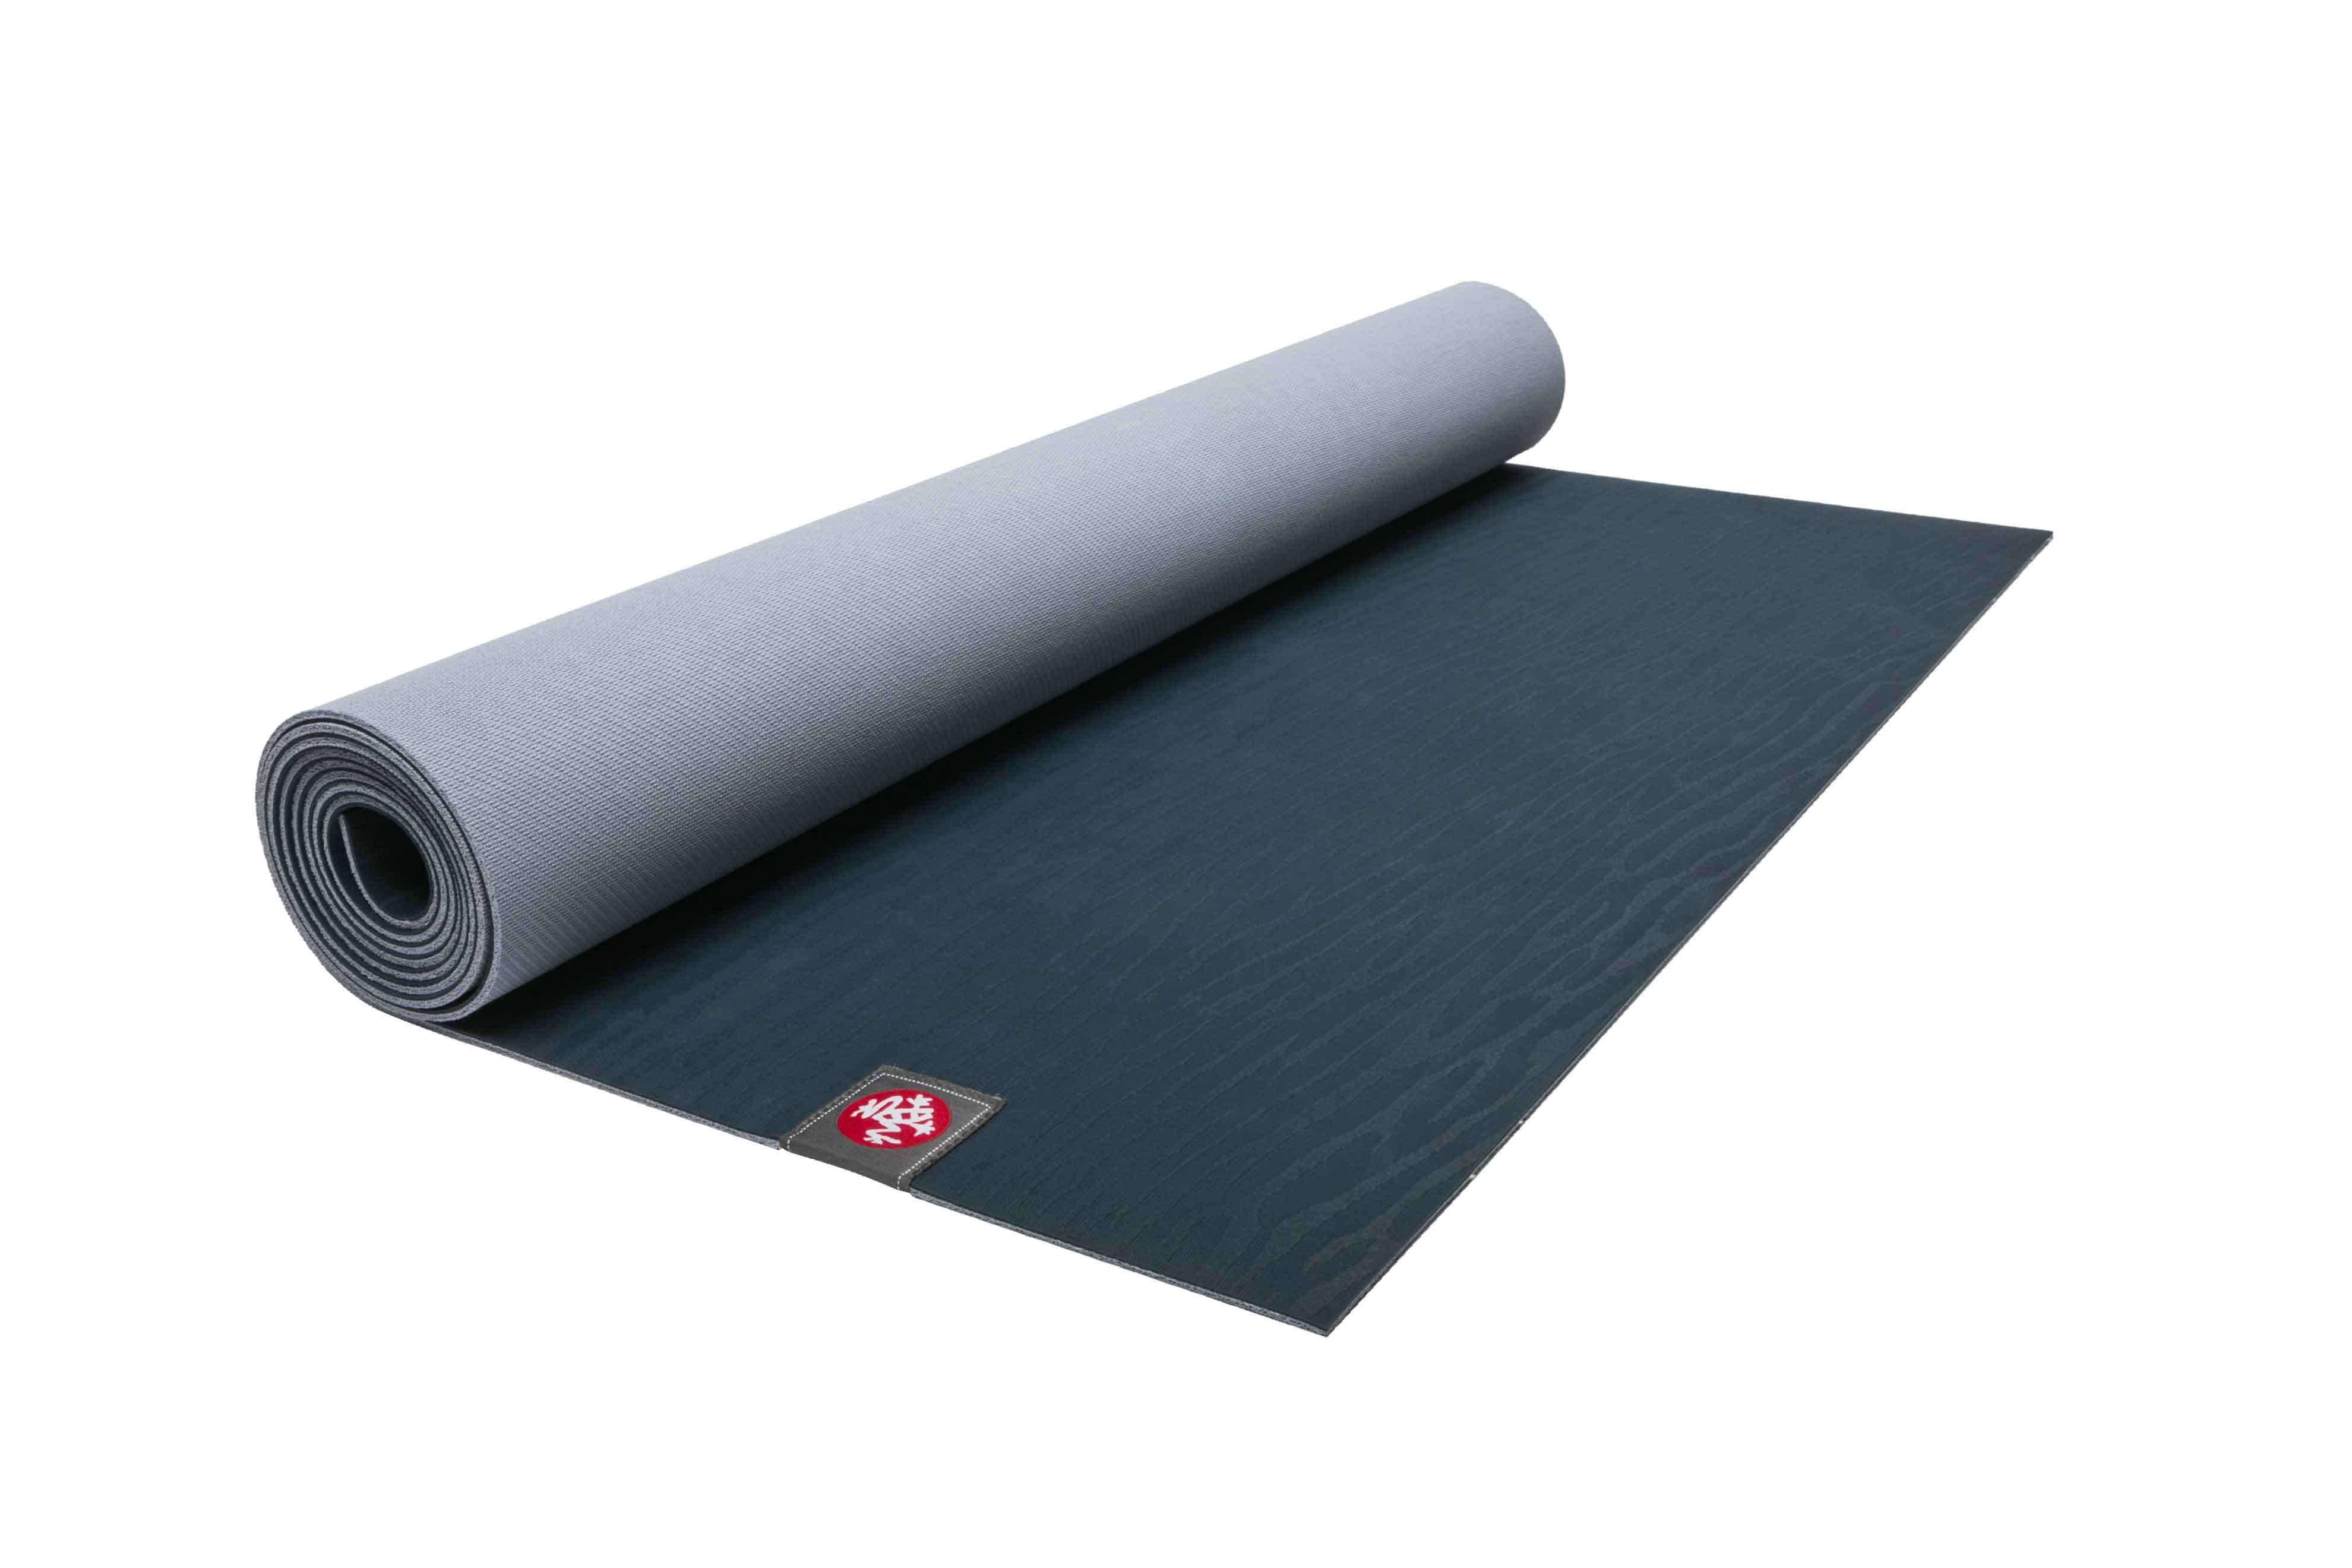 Eko-Lite-Mat-180cm-3mm-Two-Tone-EU-Midnight-02